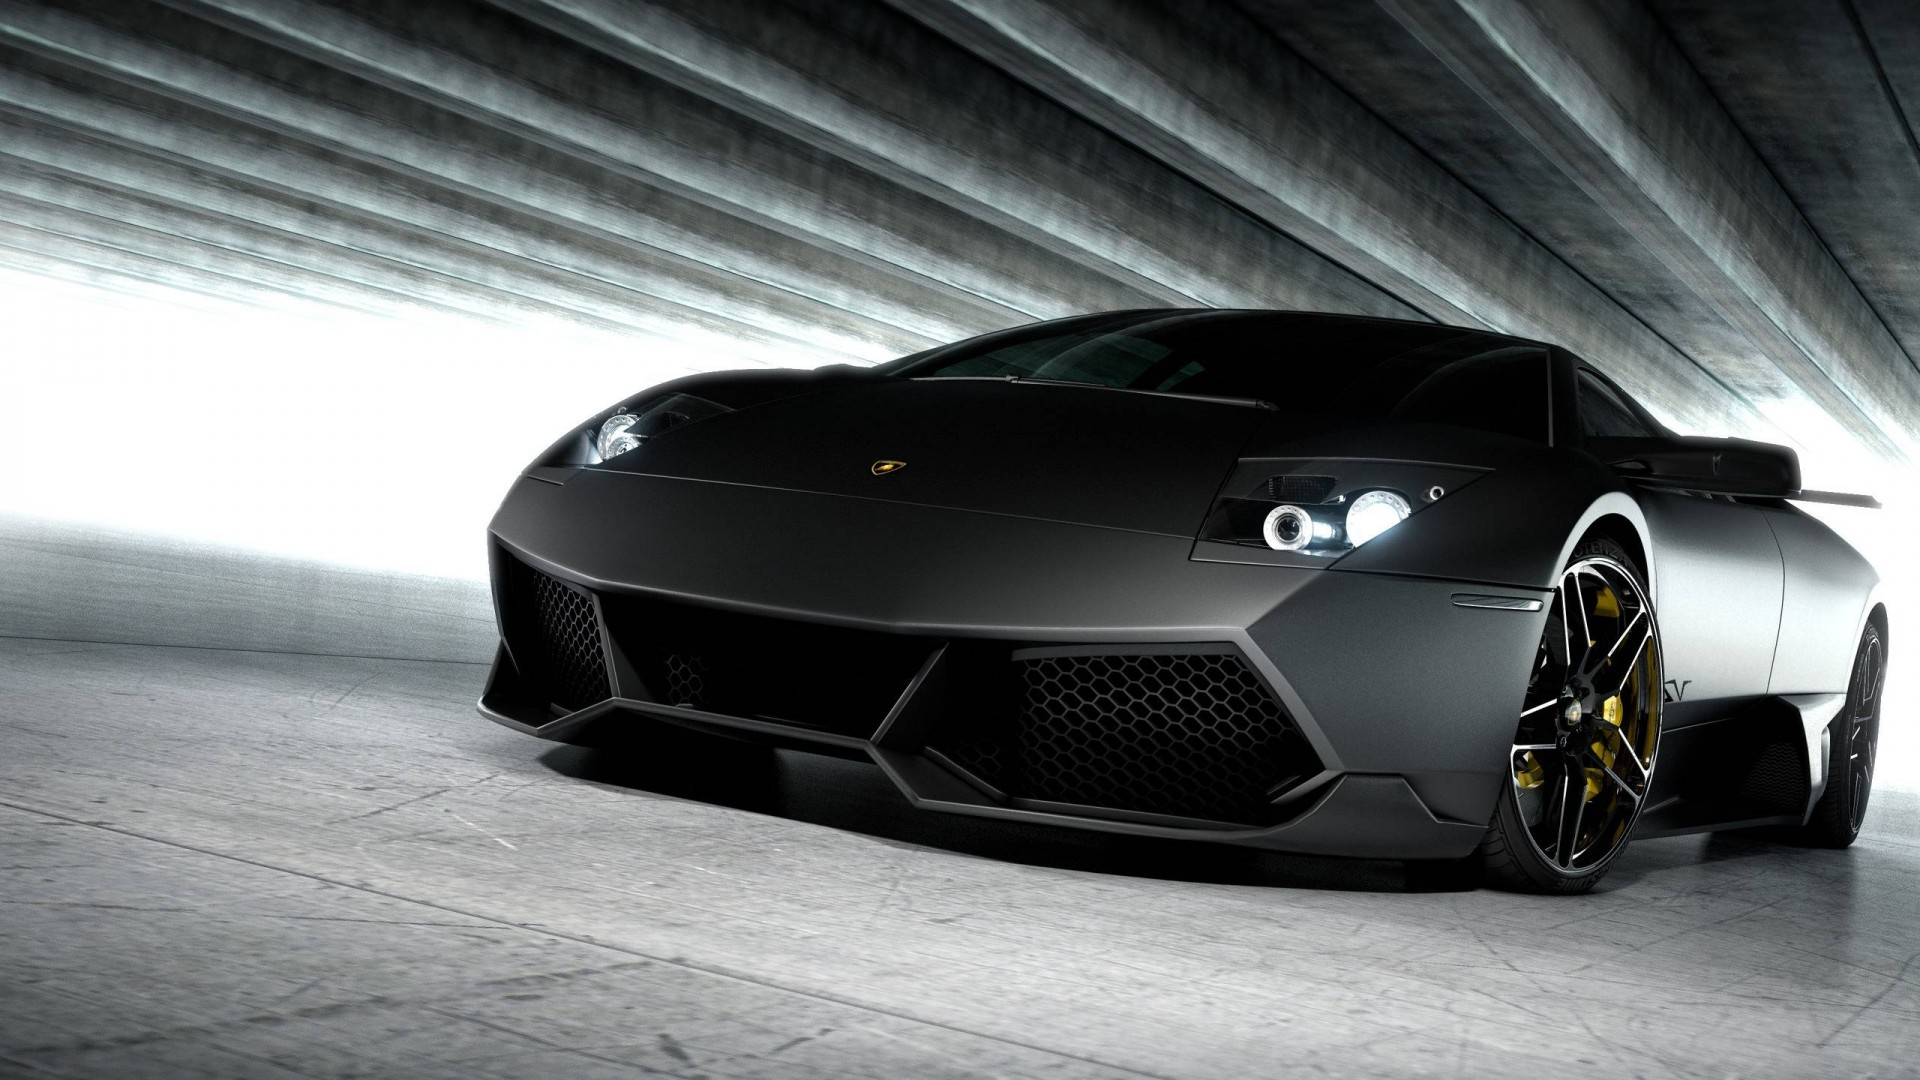 Lamborghini Fast Car Wallpaper Hd Wallpapers